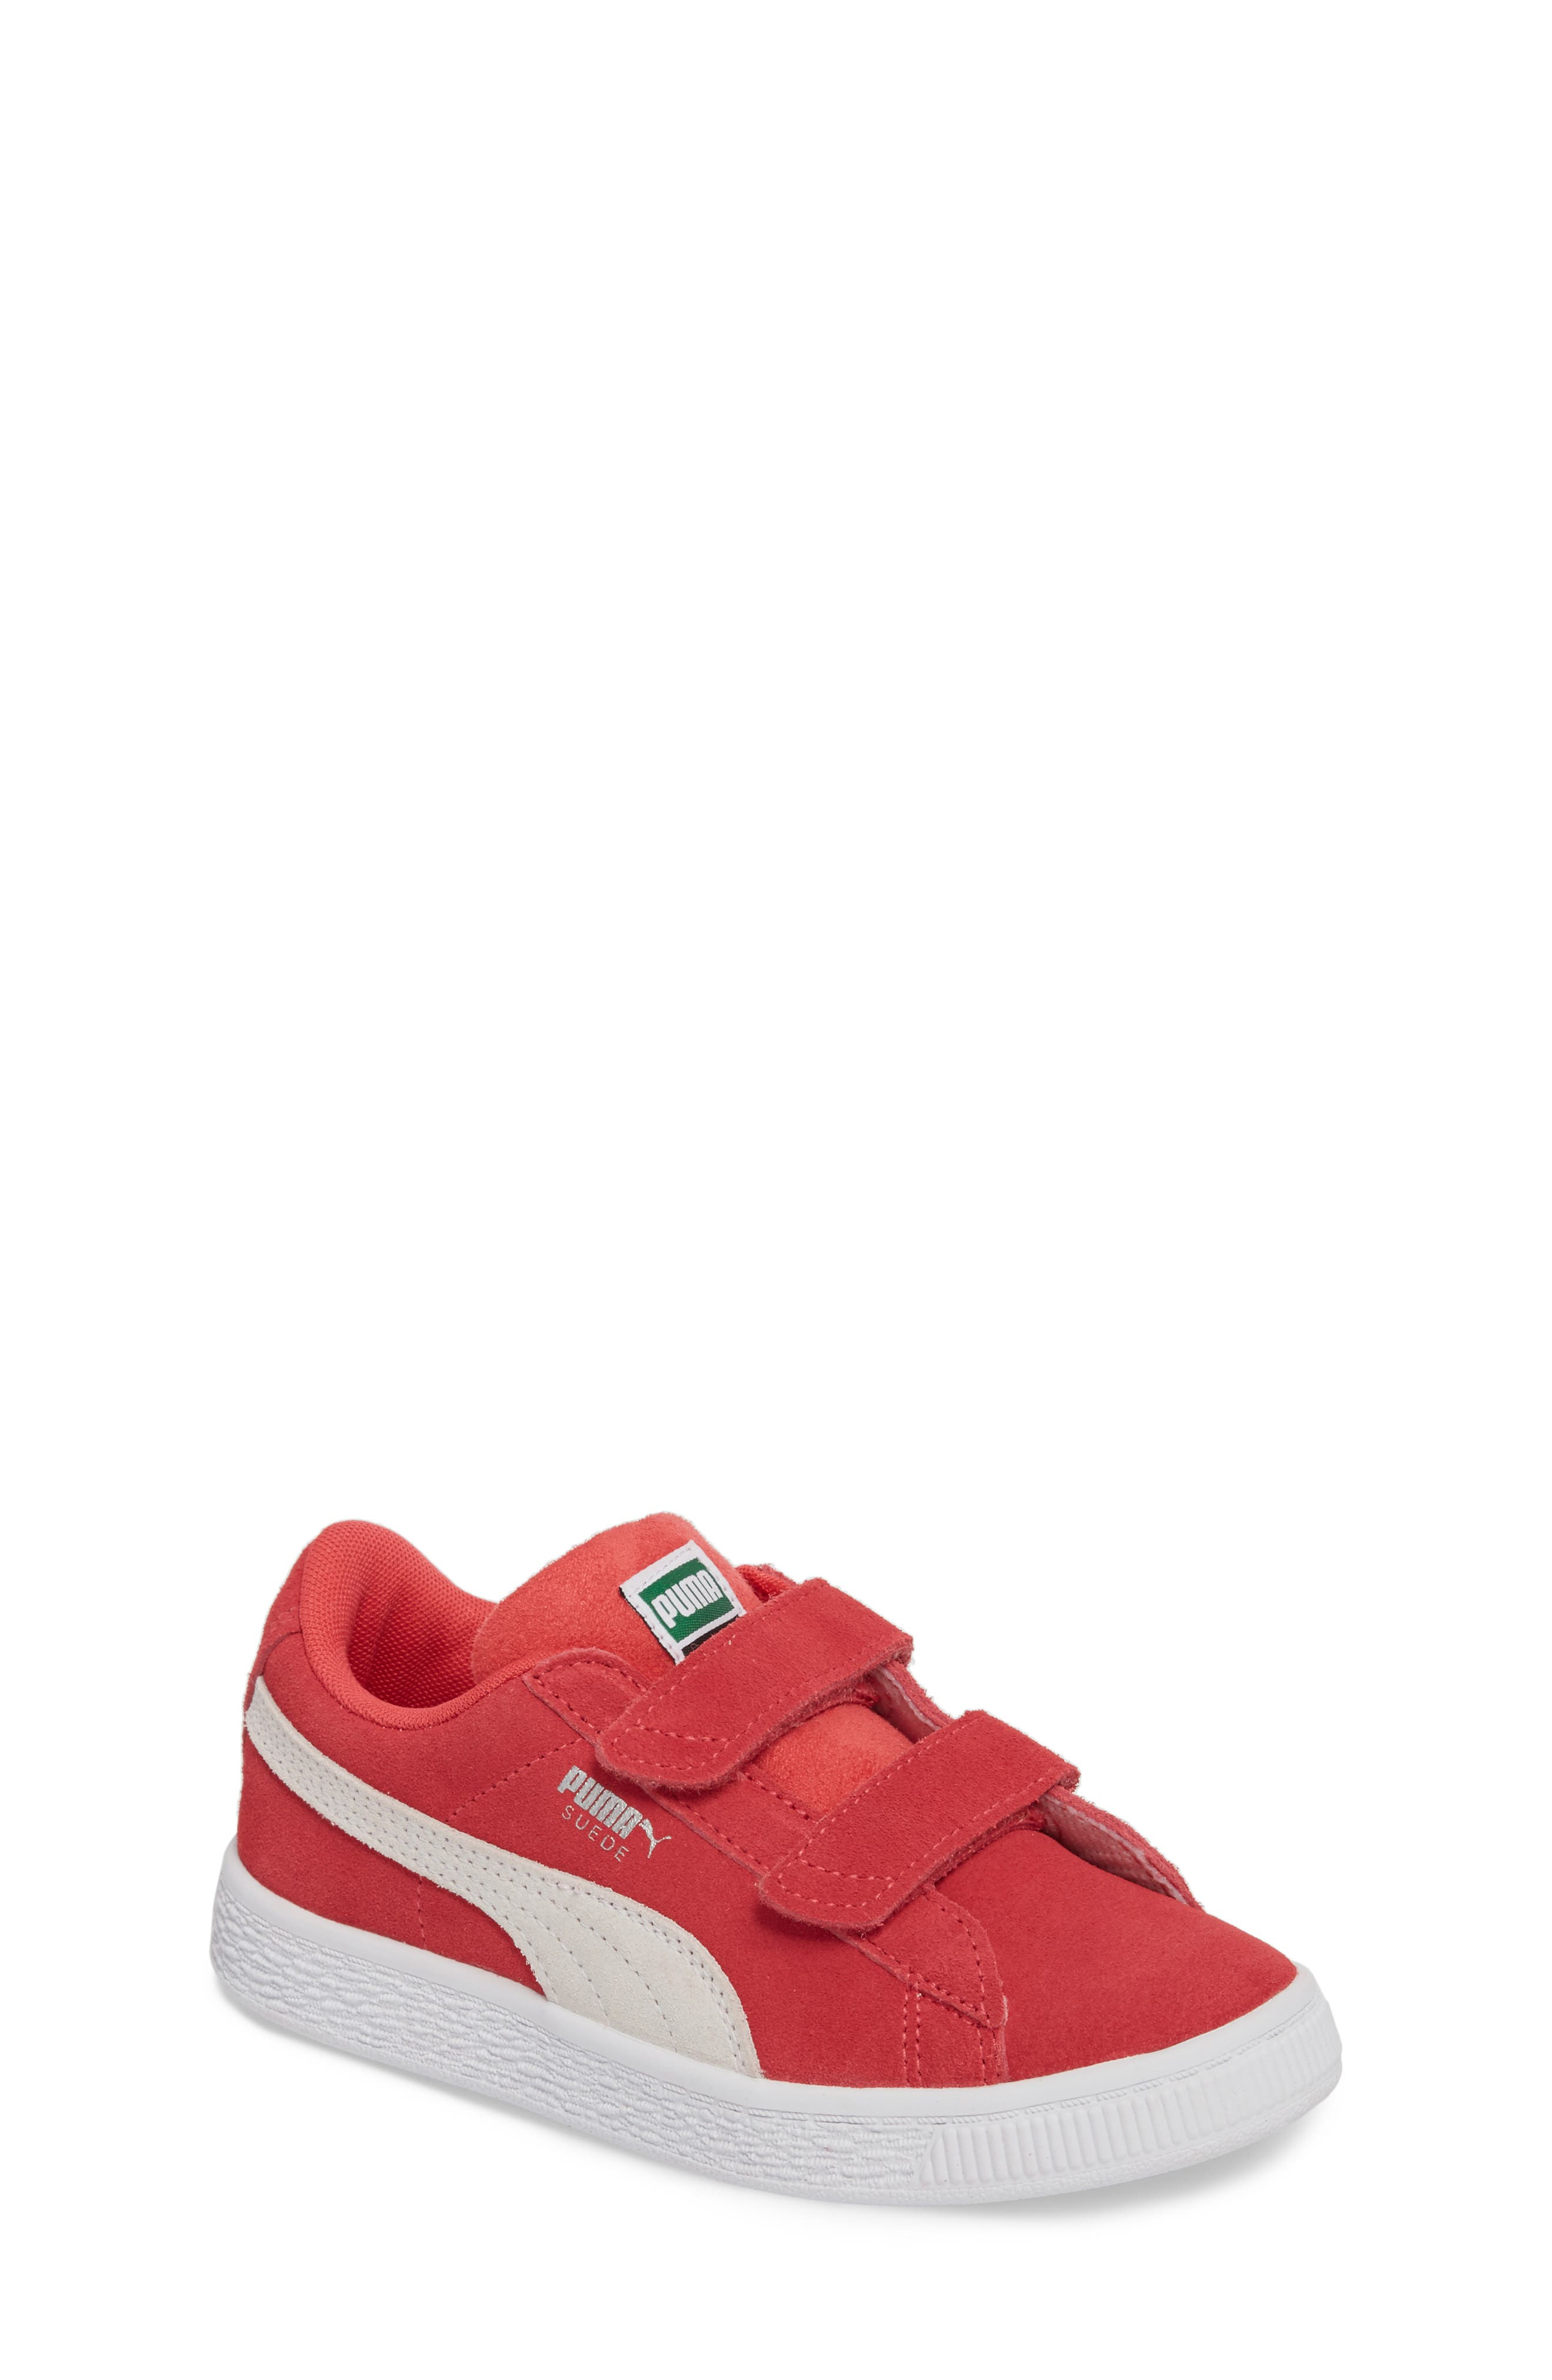 Suede Classic Sneaker,                             Main thumbnail 1, color,                             PARADISE PINK/ PUMA WHITE